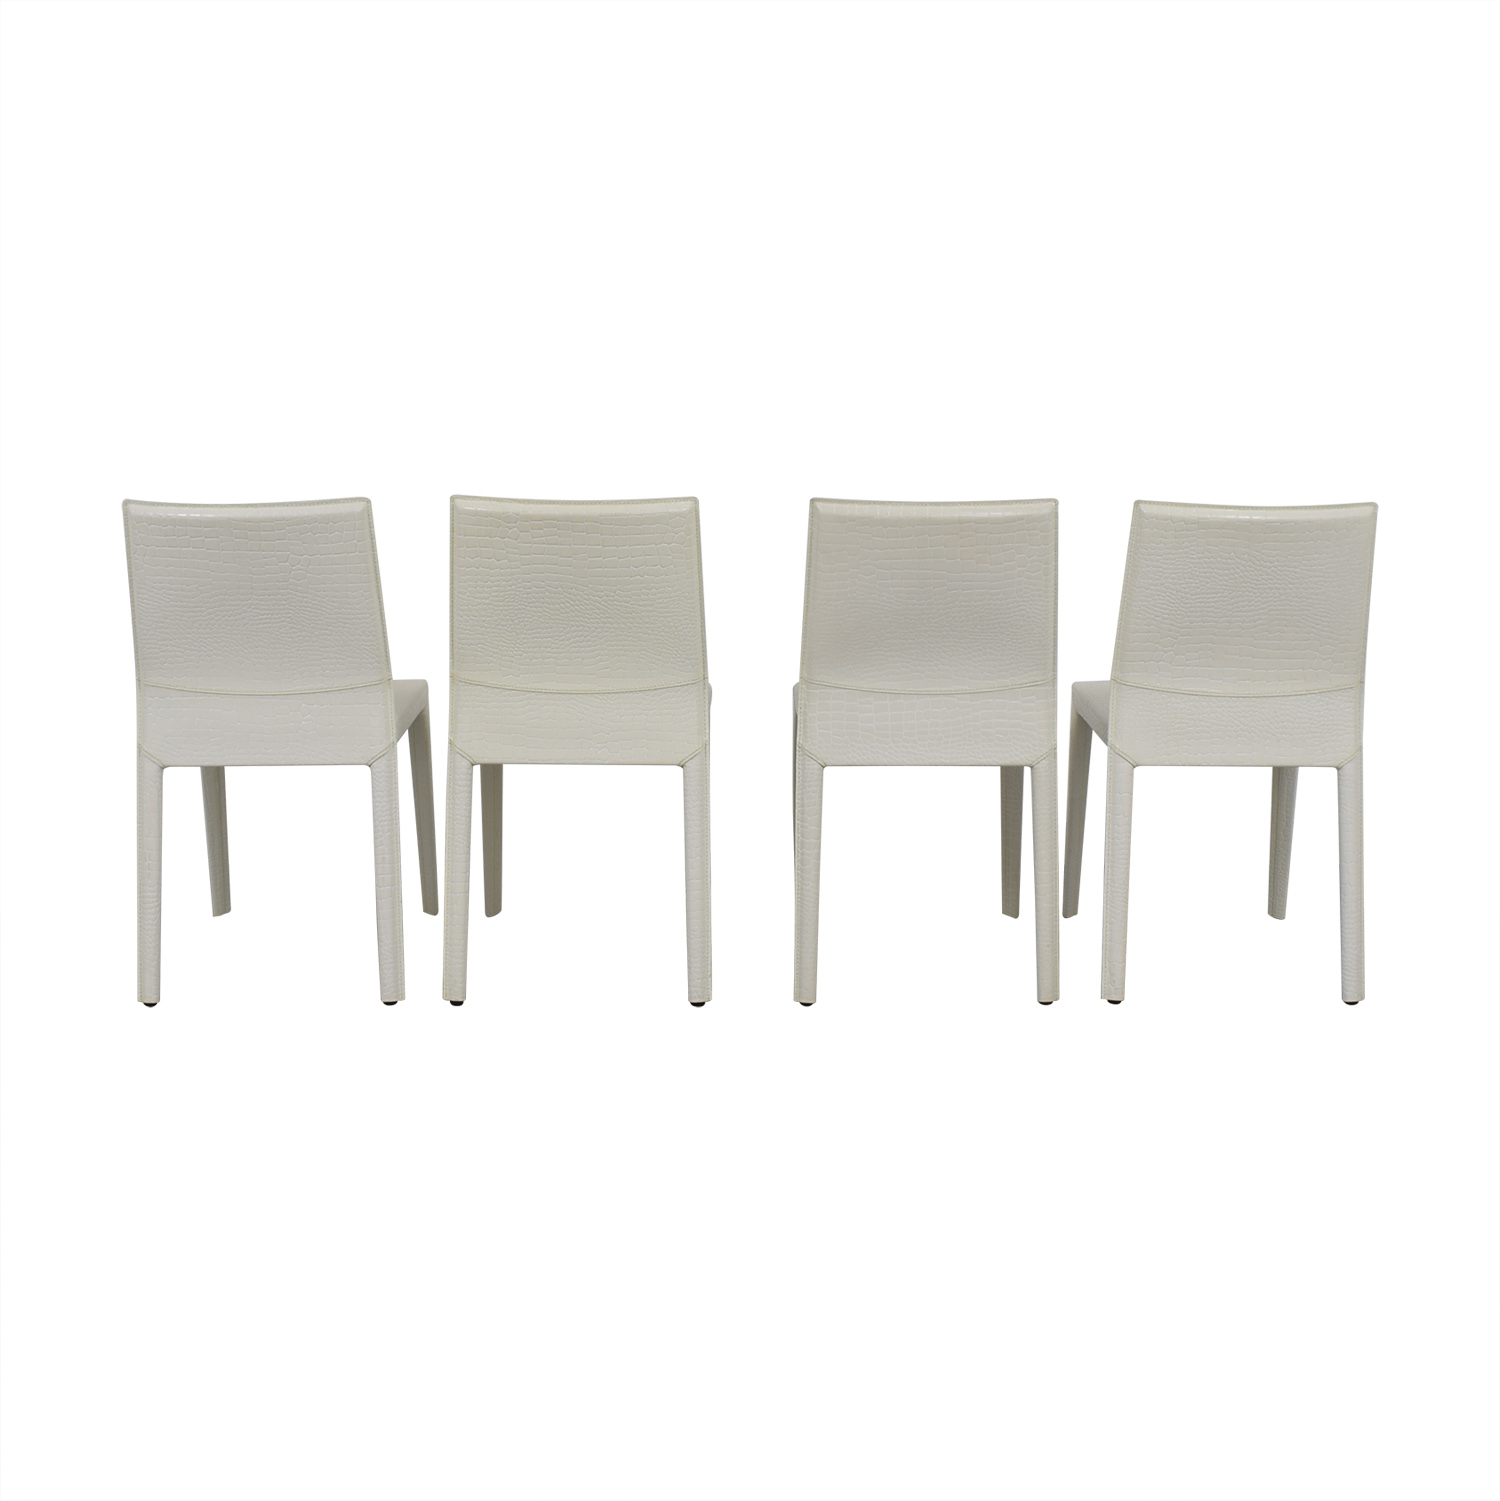 buy Nicoletti Nicoletti White Leather Embossed Croc Leather Dining Chairs online